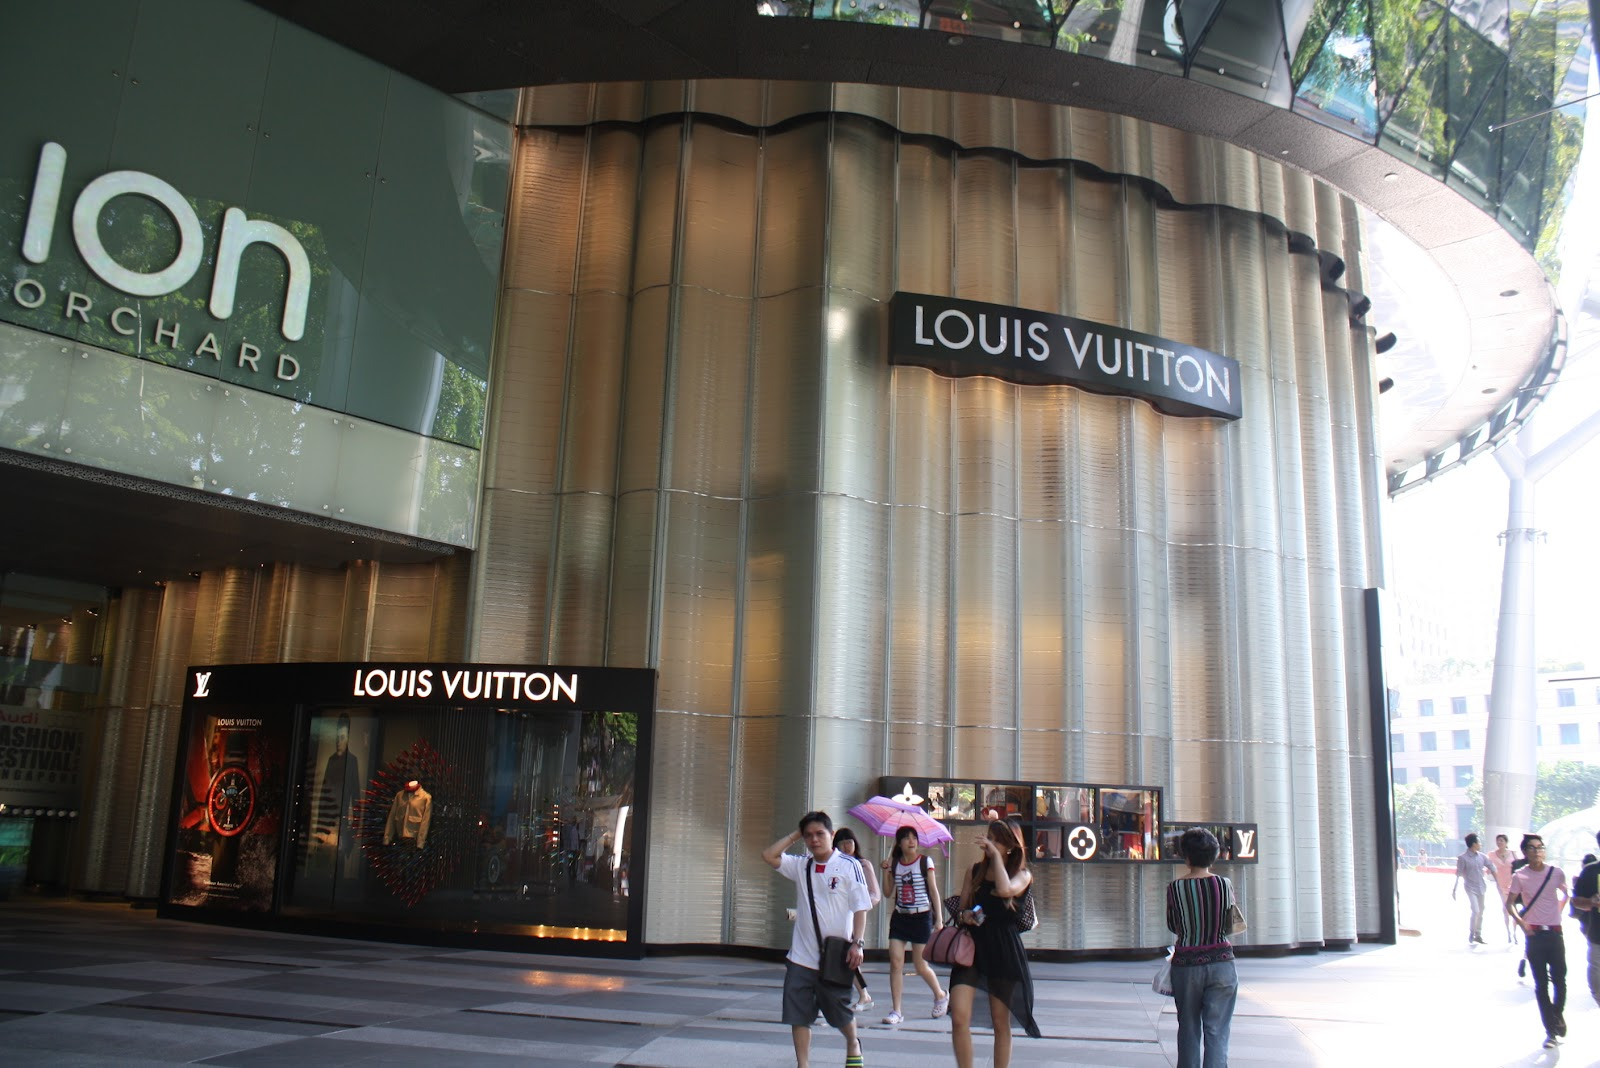 839b25c376 displayhunter: Louis Vuitton: Special exterior for ION Orchard